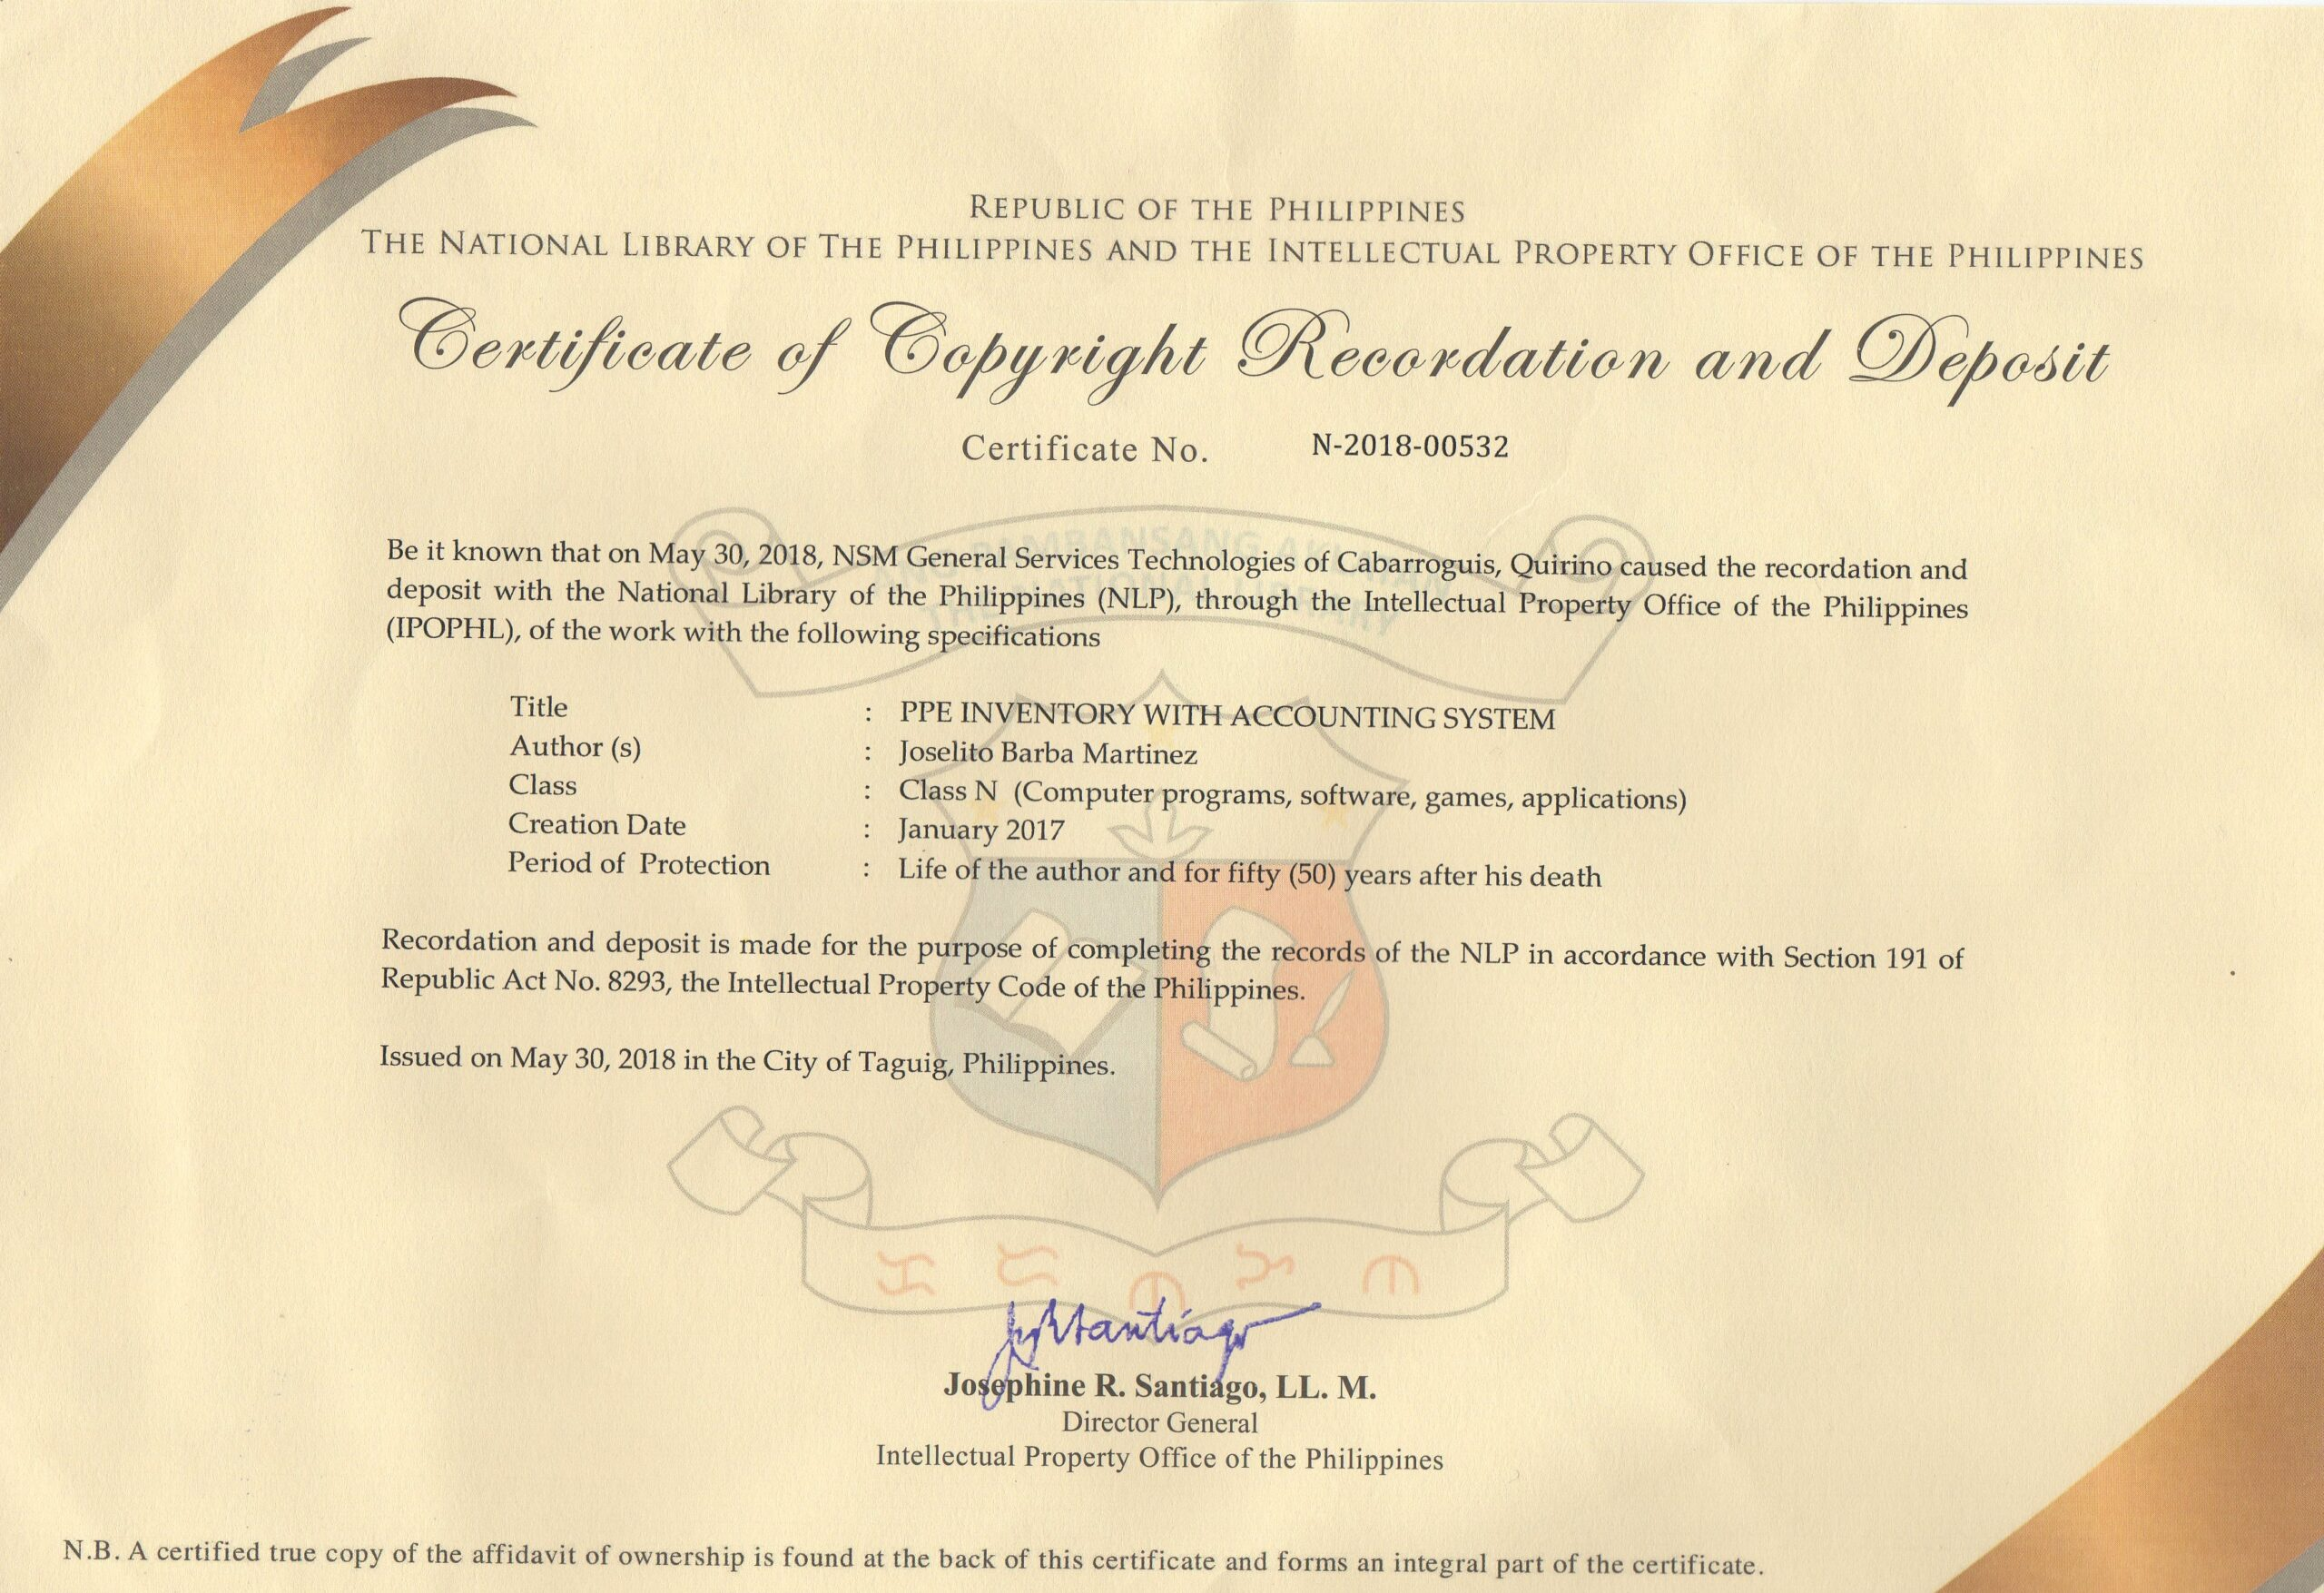 Certificate of Copyright